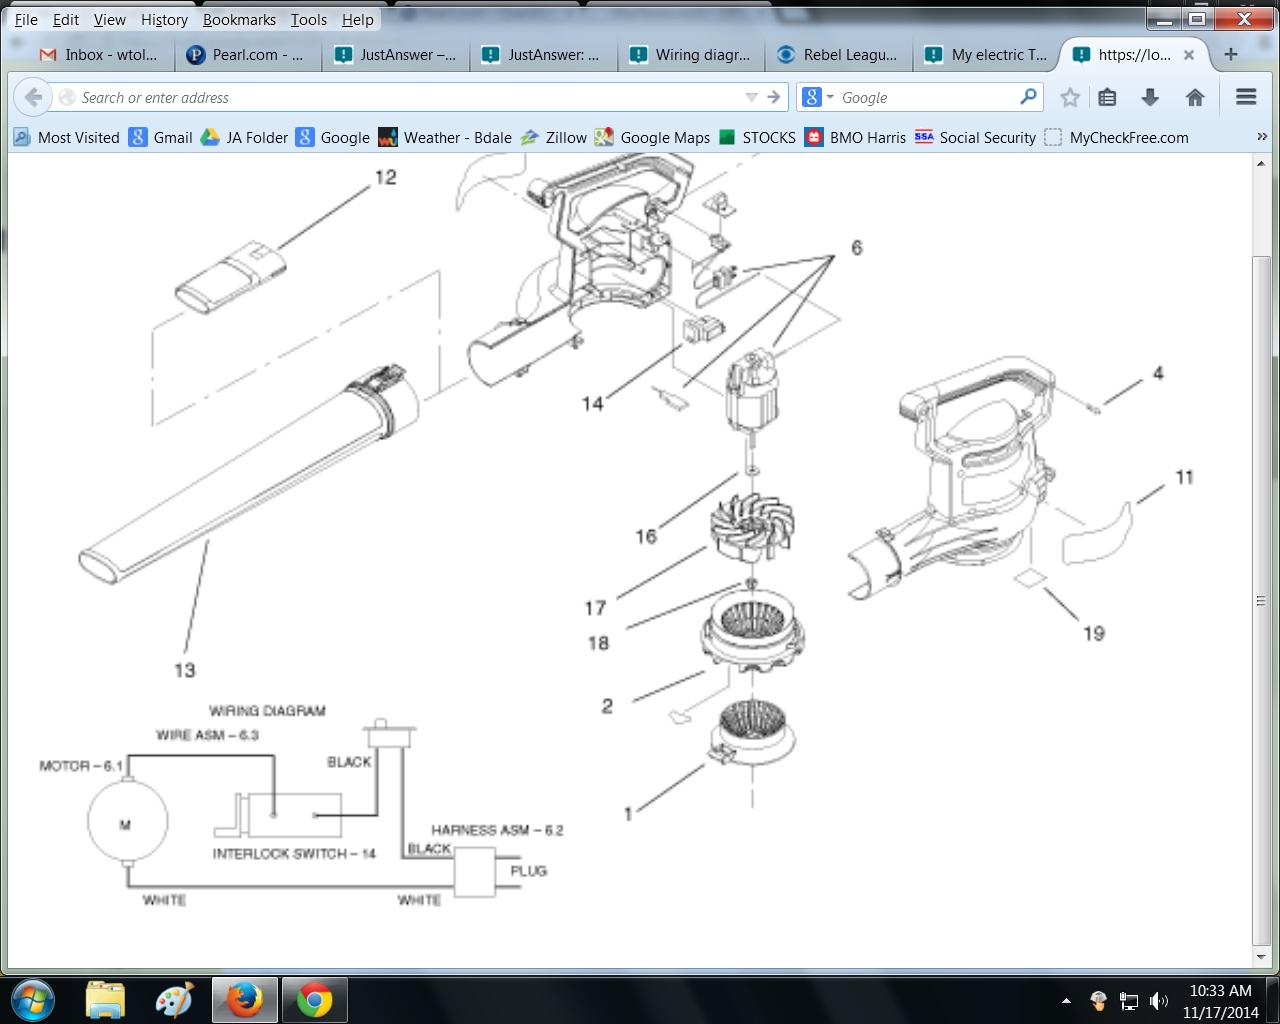 [DIAGRAM_34OR]  Wiring diagram for safety switch on bottom of unit? | Toro Leaf Blower Wiring Diagram |  | JustAnswer